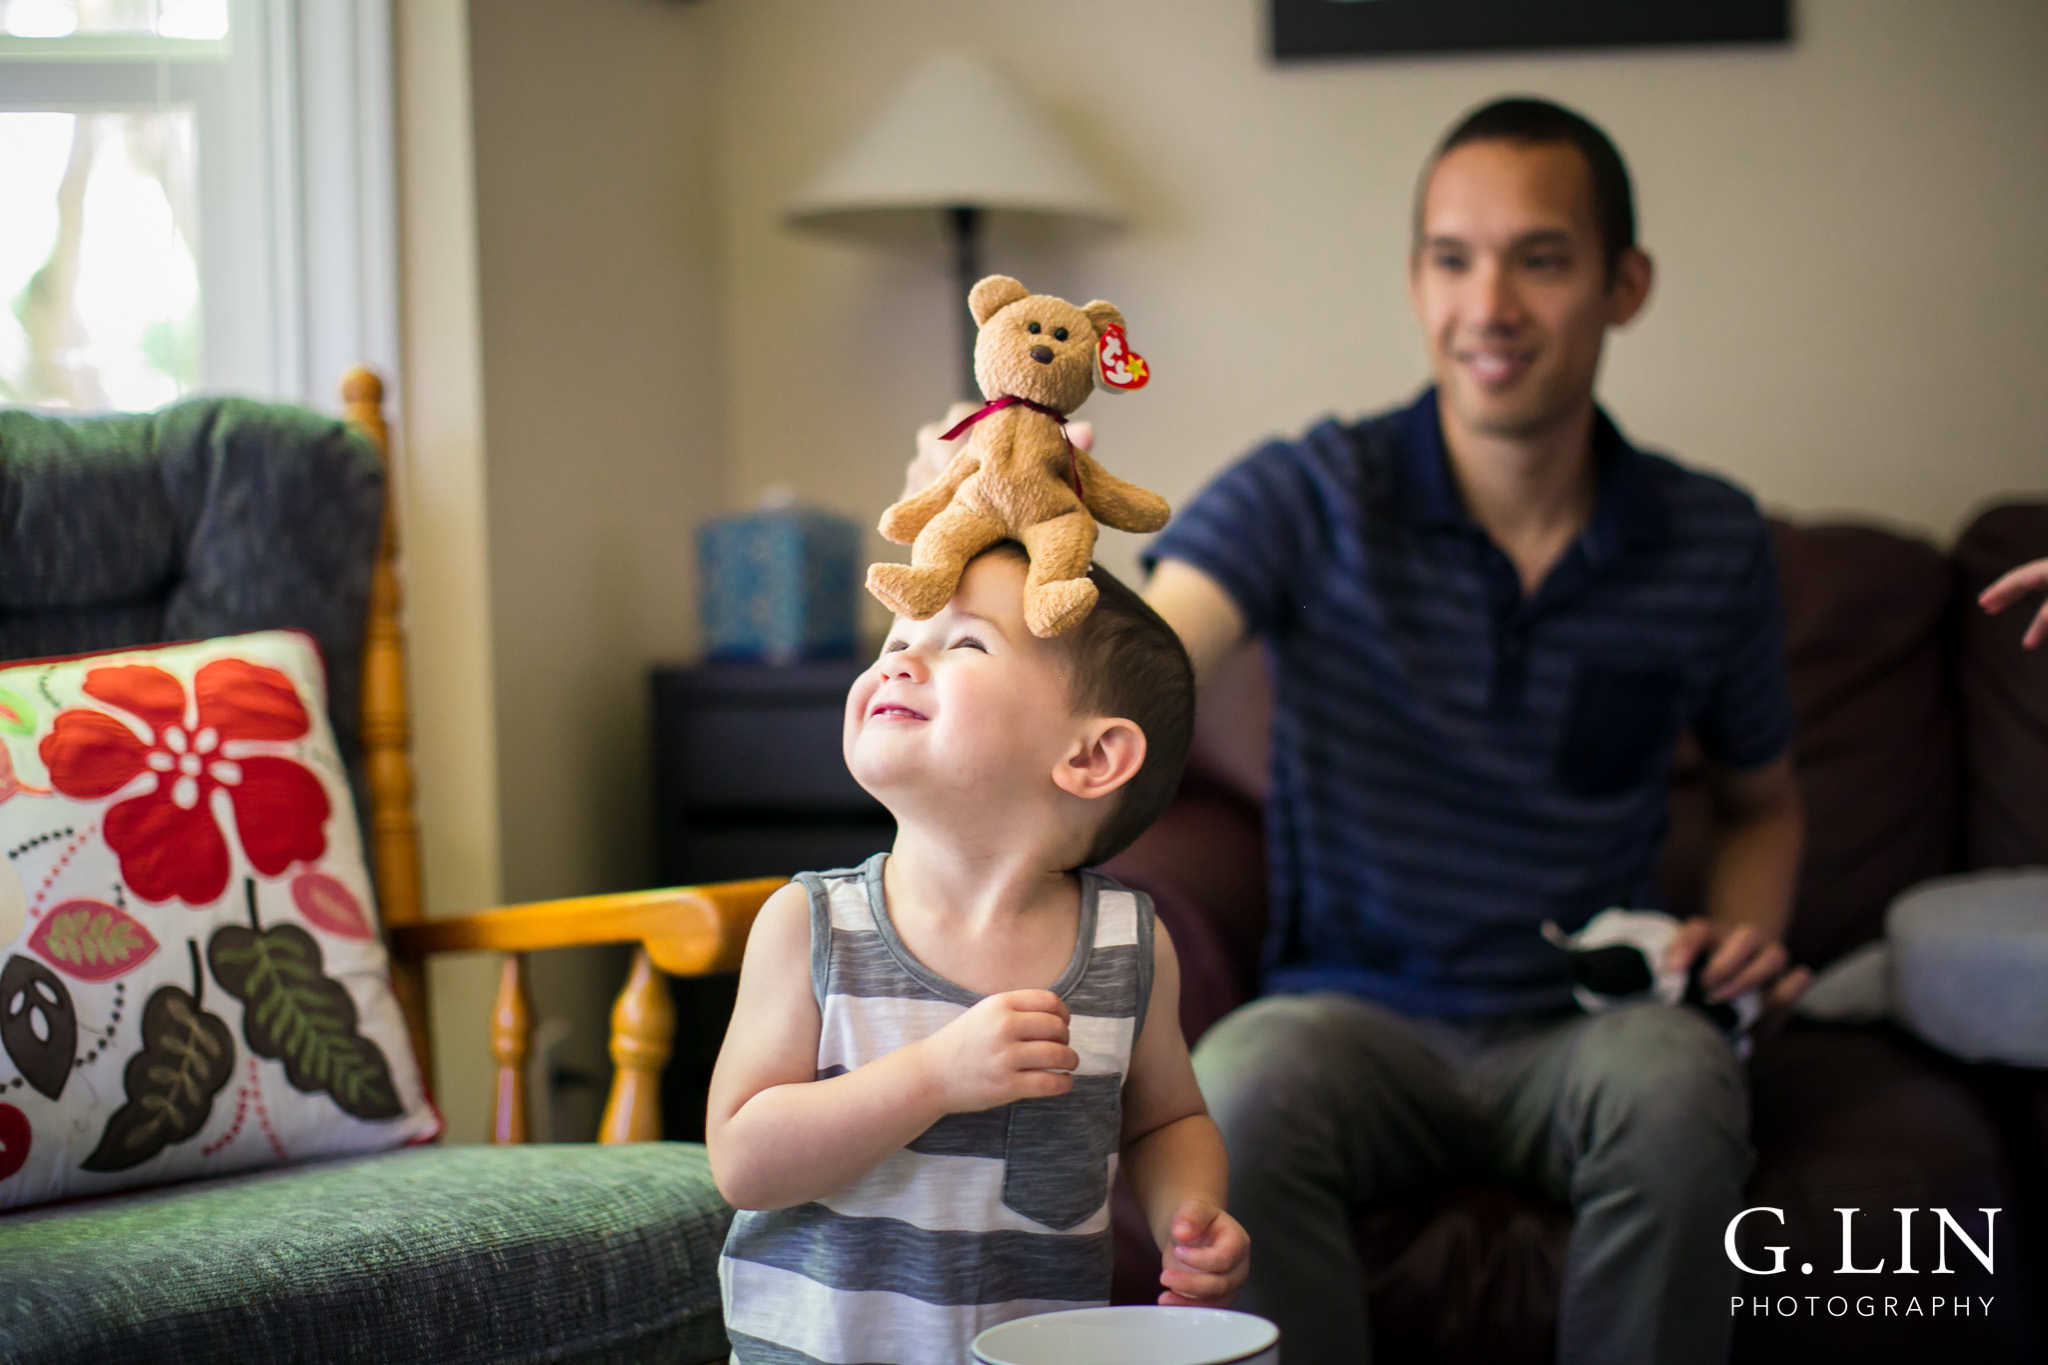 Raleigh Family Photographer | G. Lin Photography | Children laughing and playing in living room